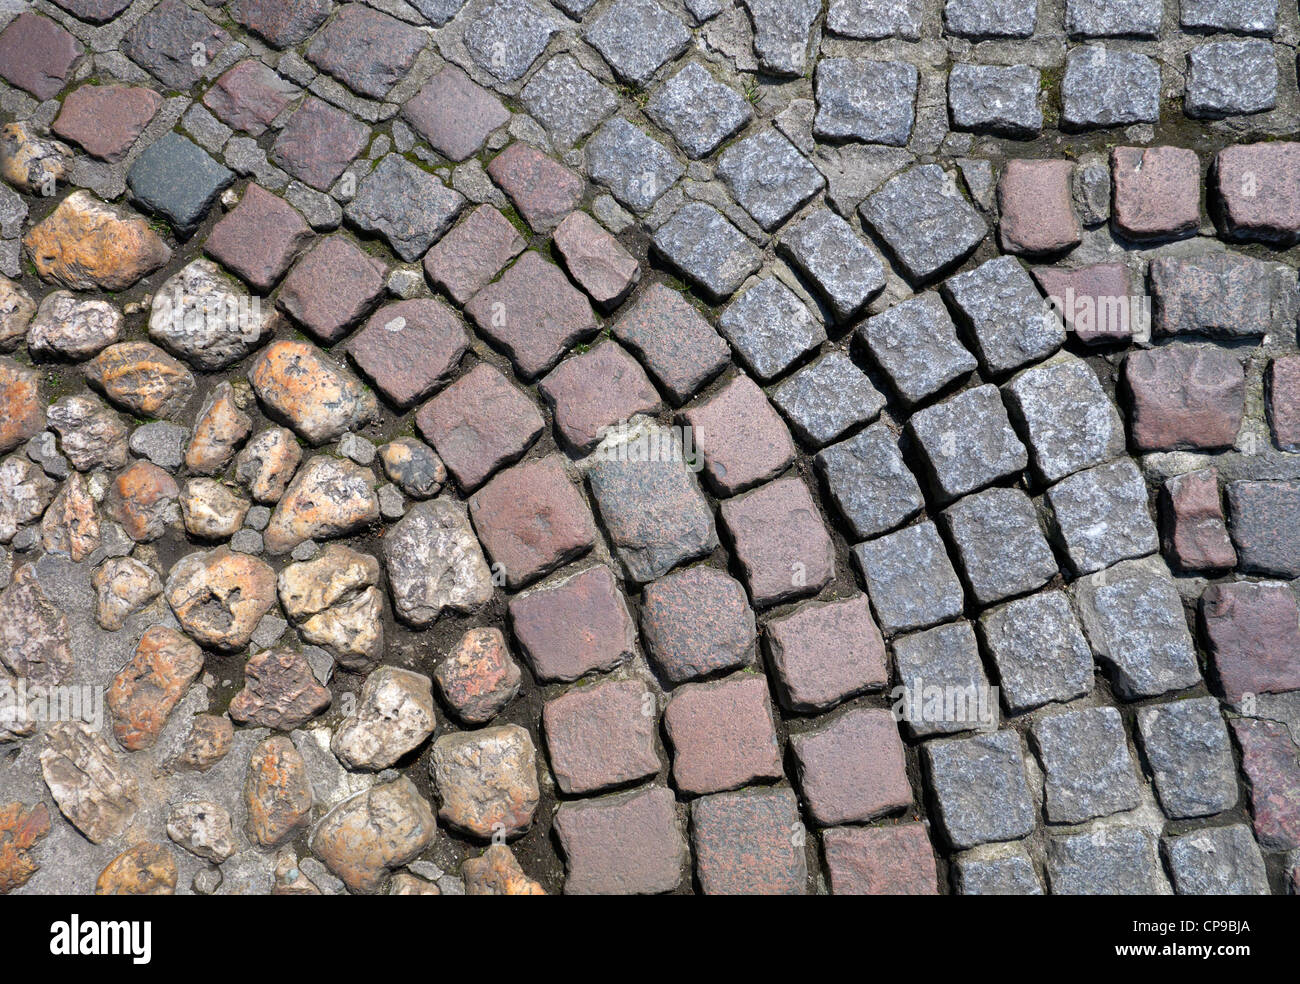 Different types of old and new cobblestones in Truro, Cornwall UK - Stock Image